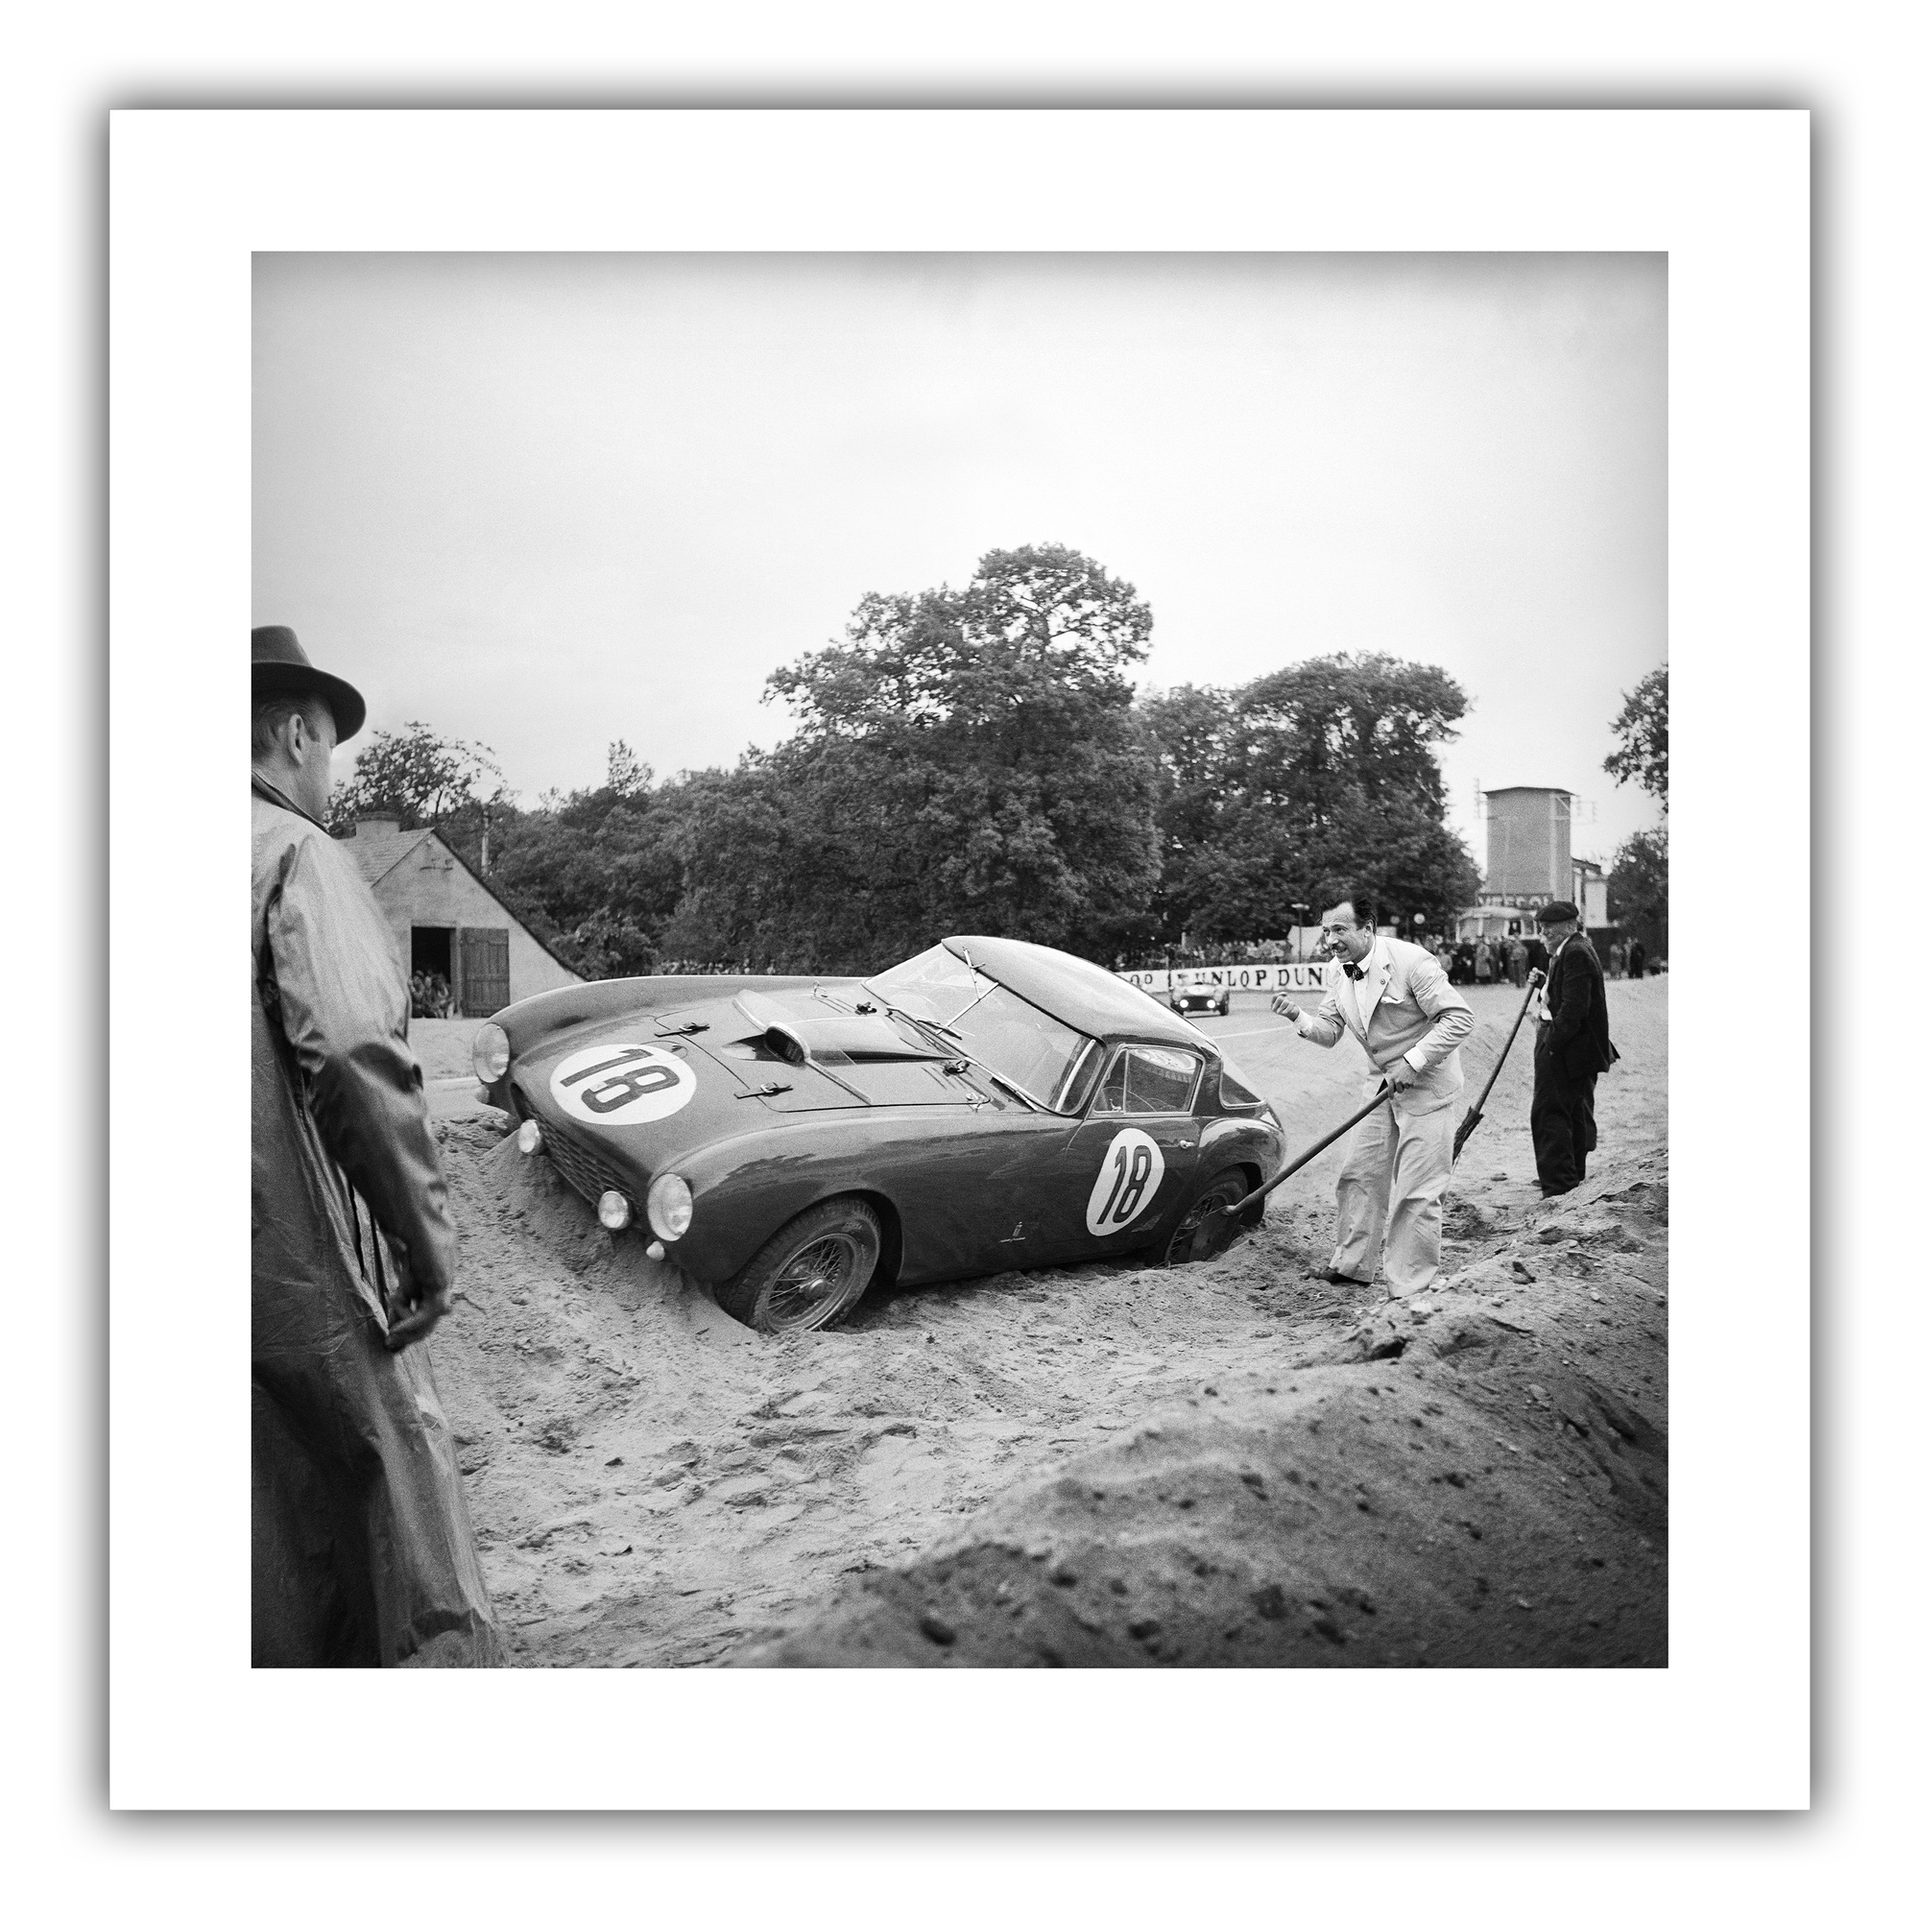 Such is Life in Racing - Le Mans 1954